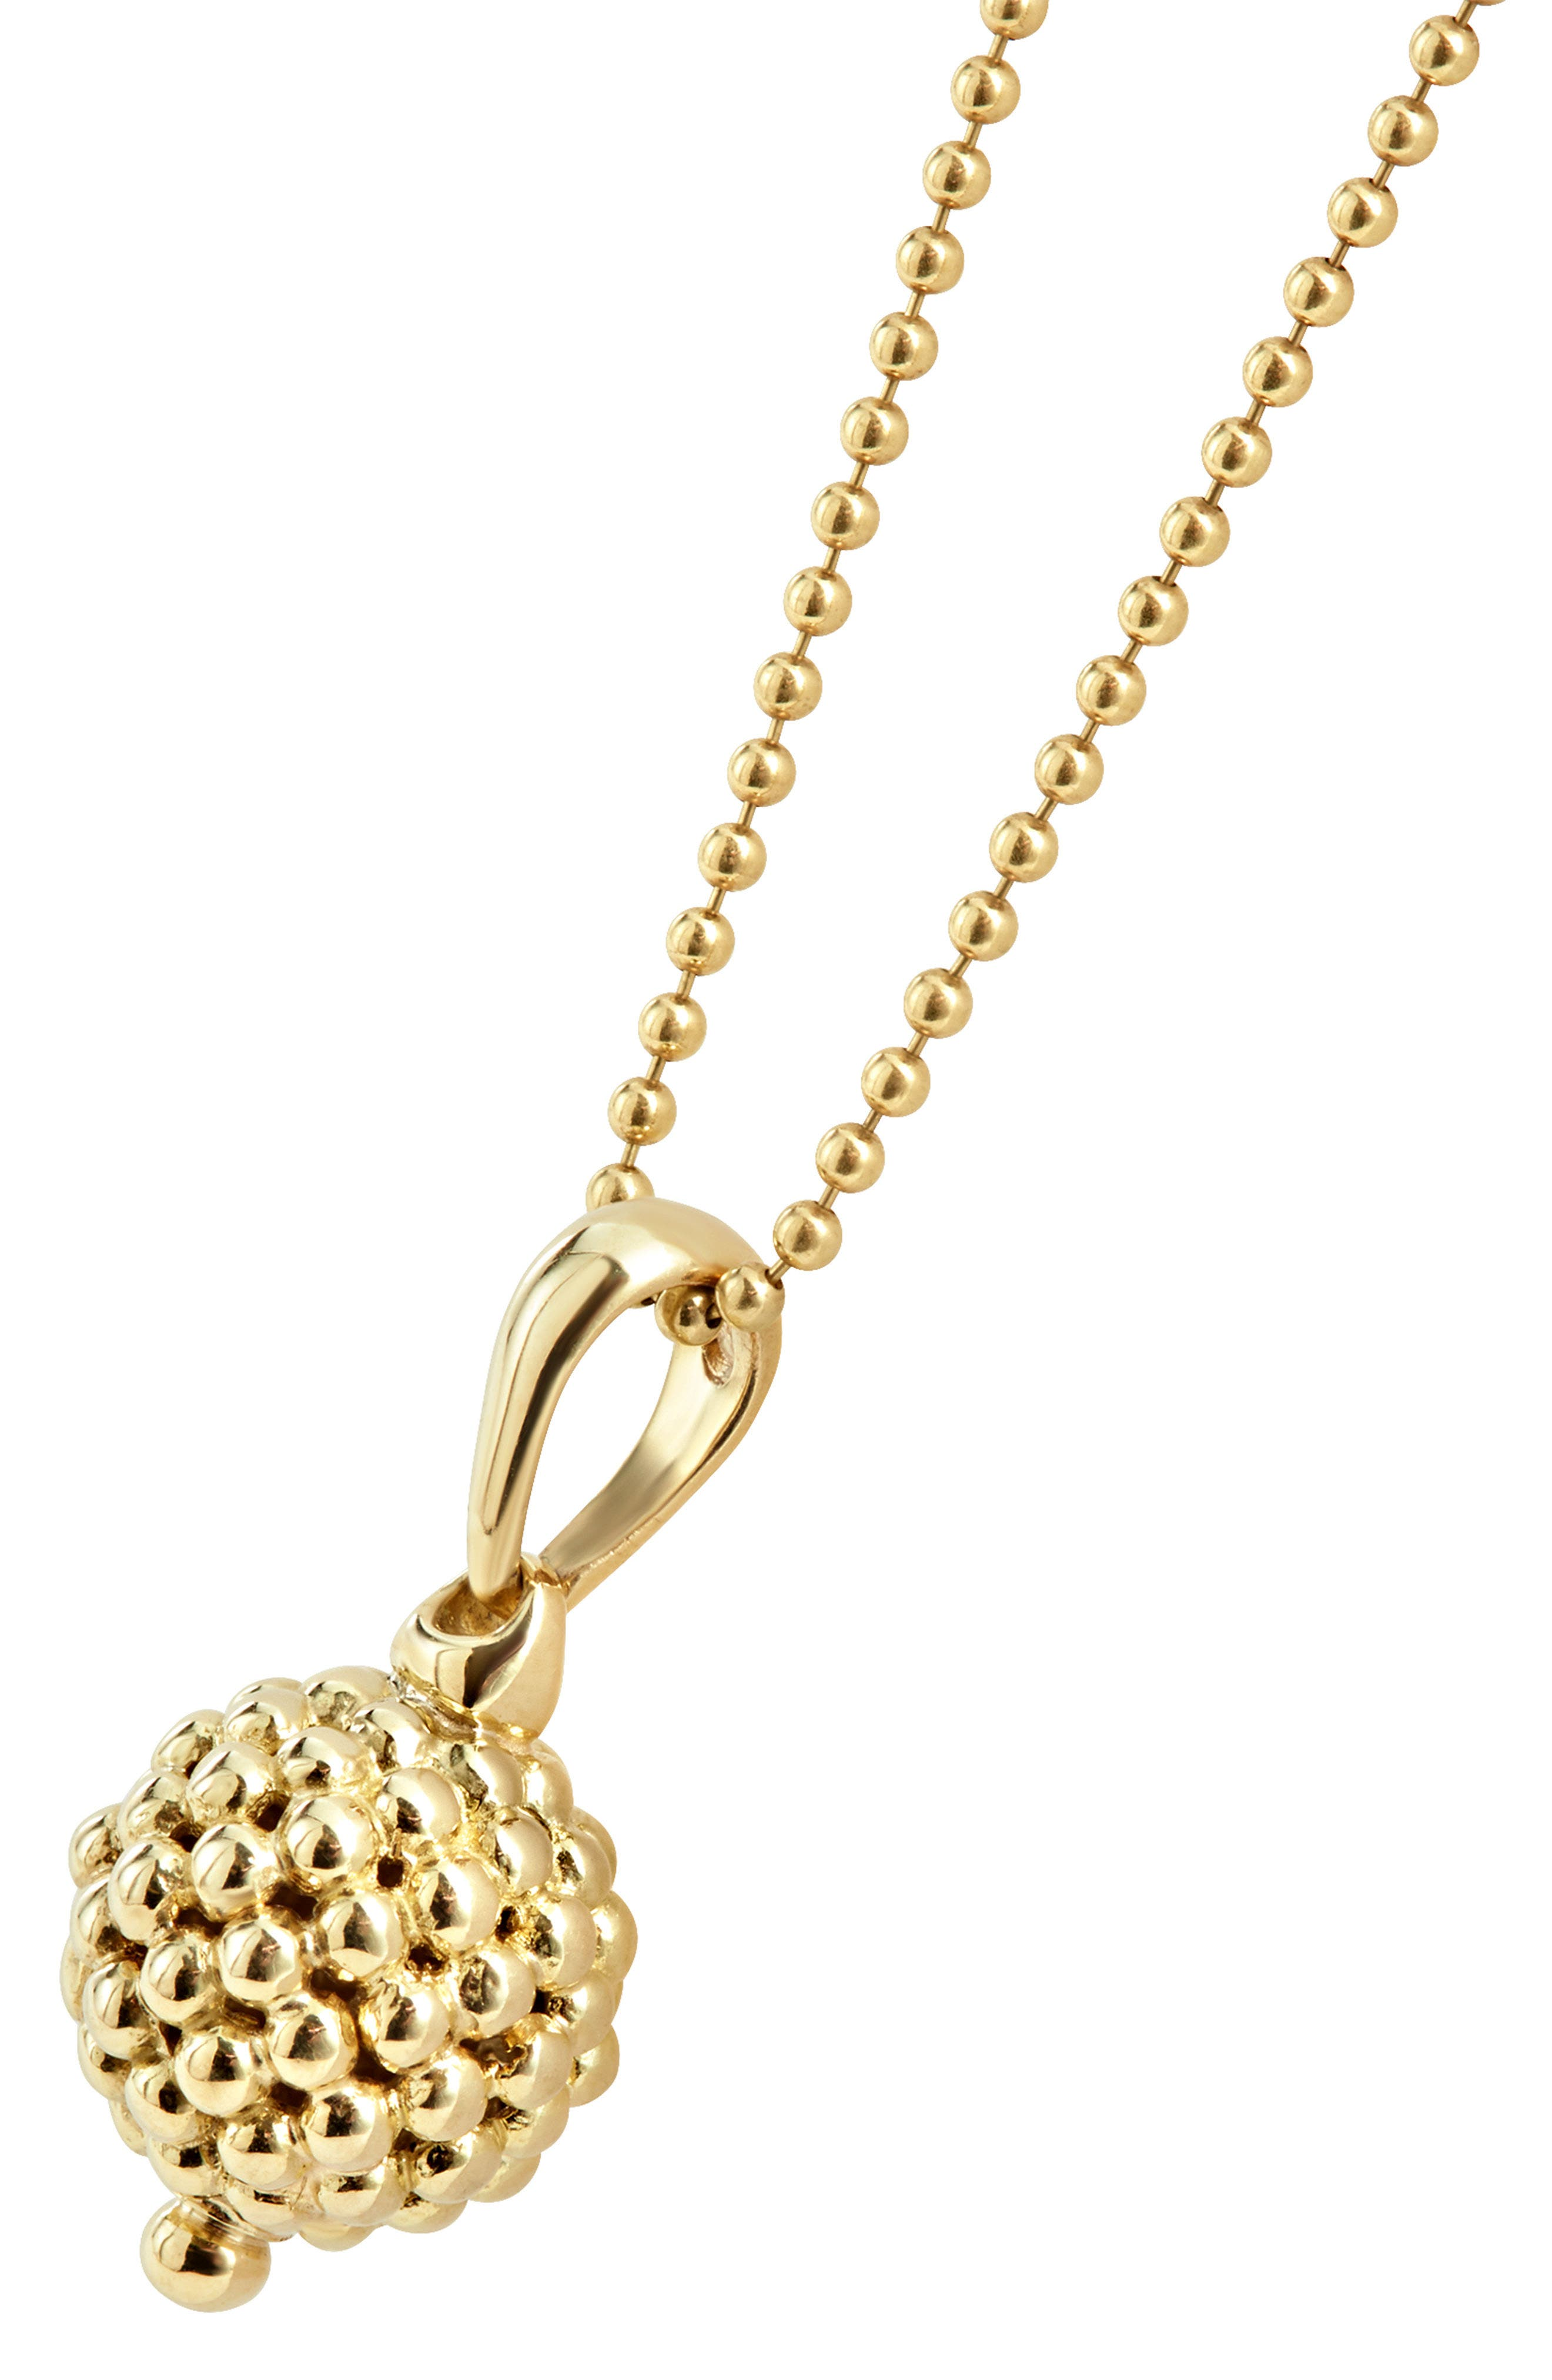 Caviar Gold Ball Pendant Necklace,                             Alternate thumbnail 3, color,                             Gold